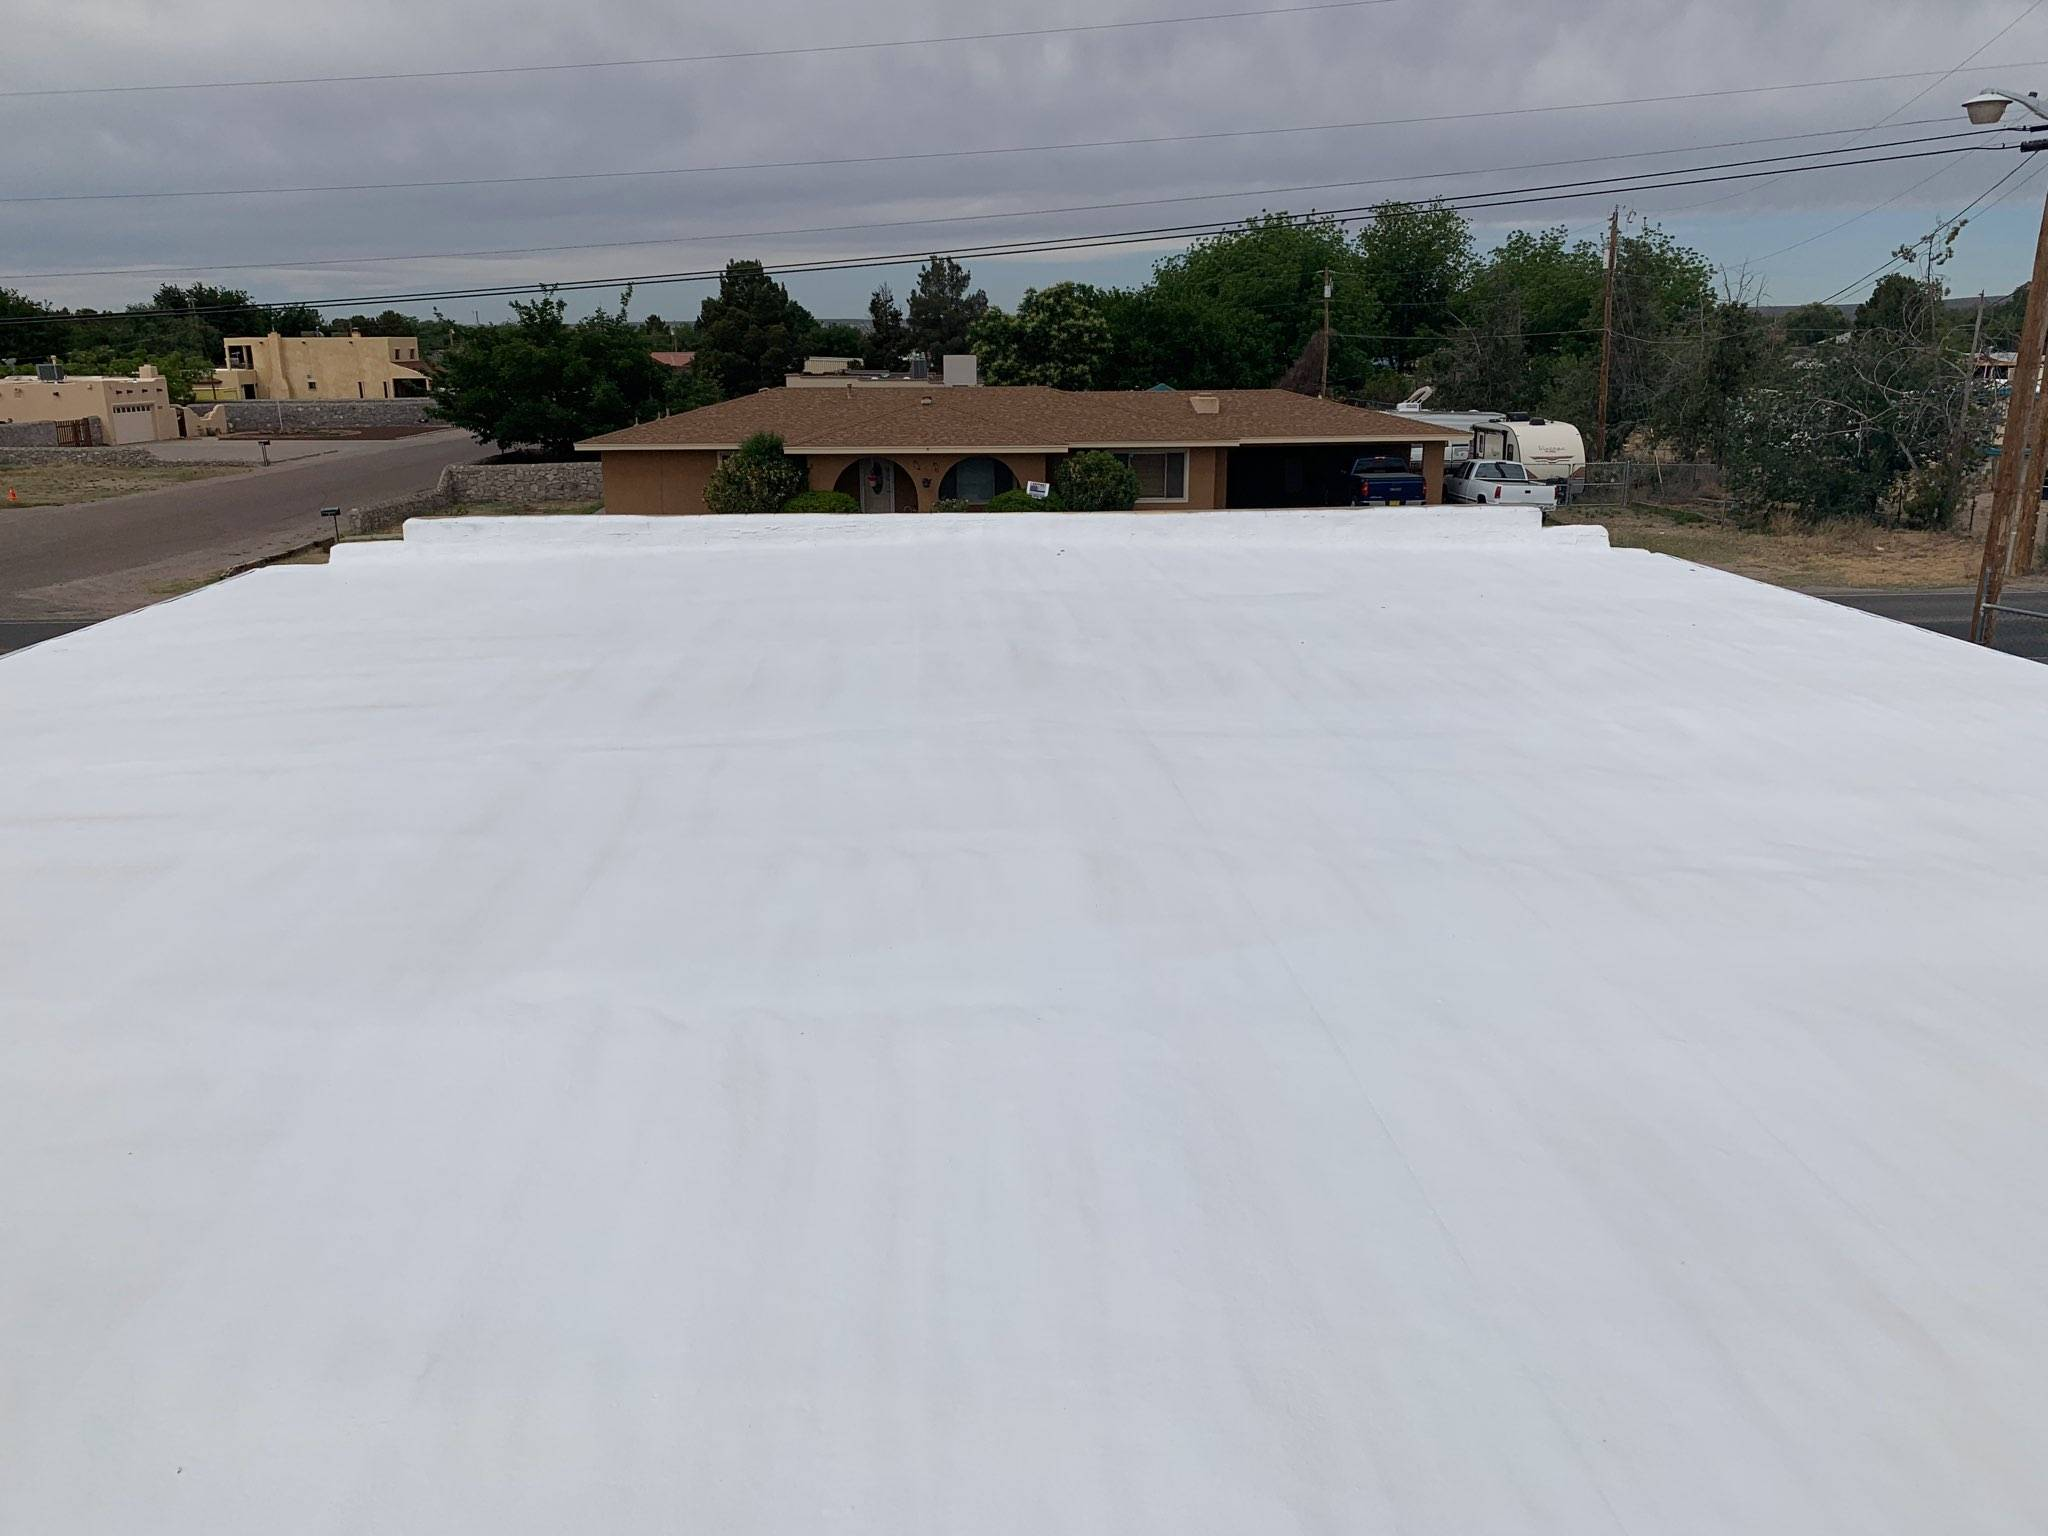 Patriot Construction & Consulting LLC - roofing contractor  | Photo 2 of 4 | Address: 4960 S Gilbert Rd Suite 284, Chandler, AZ 85249, United States | Phone: (602) 641-9501